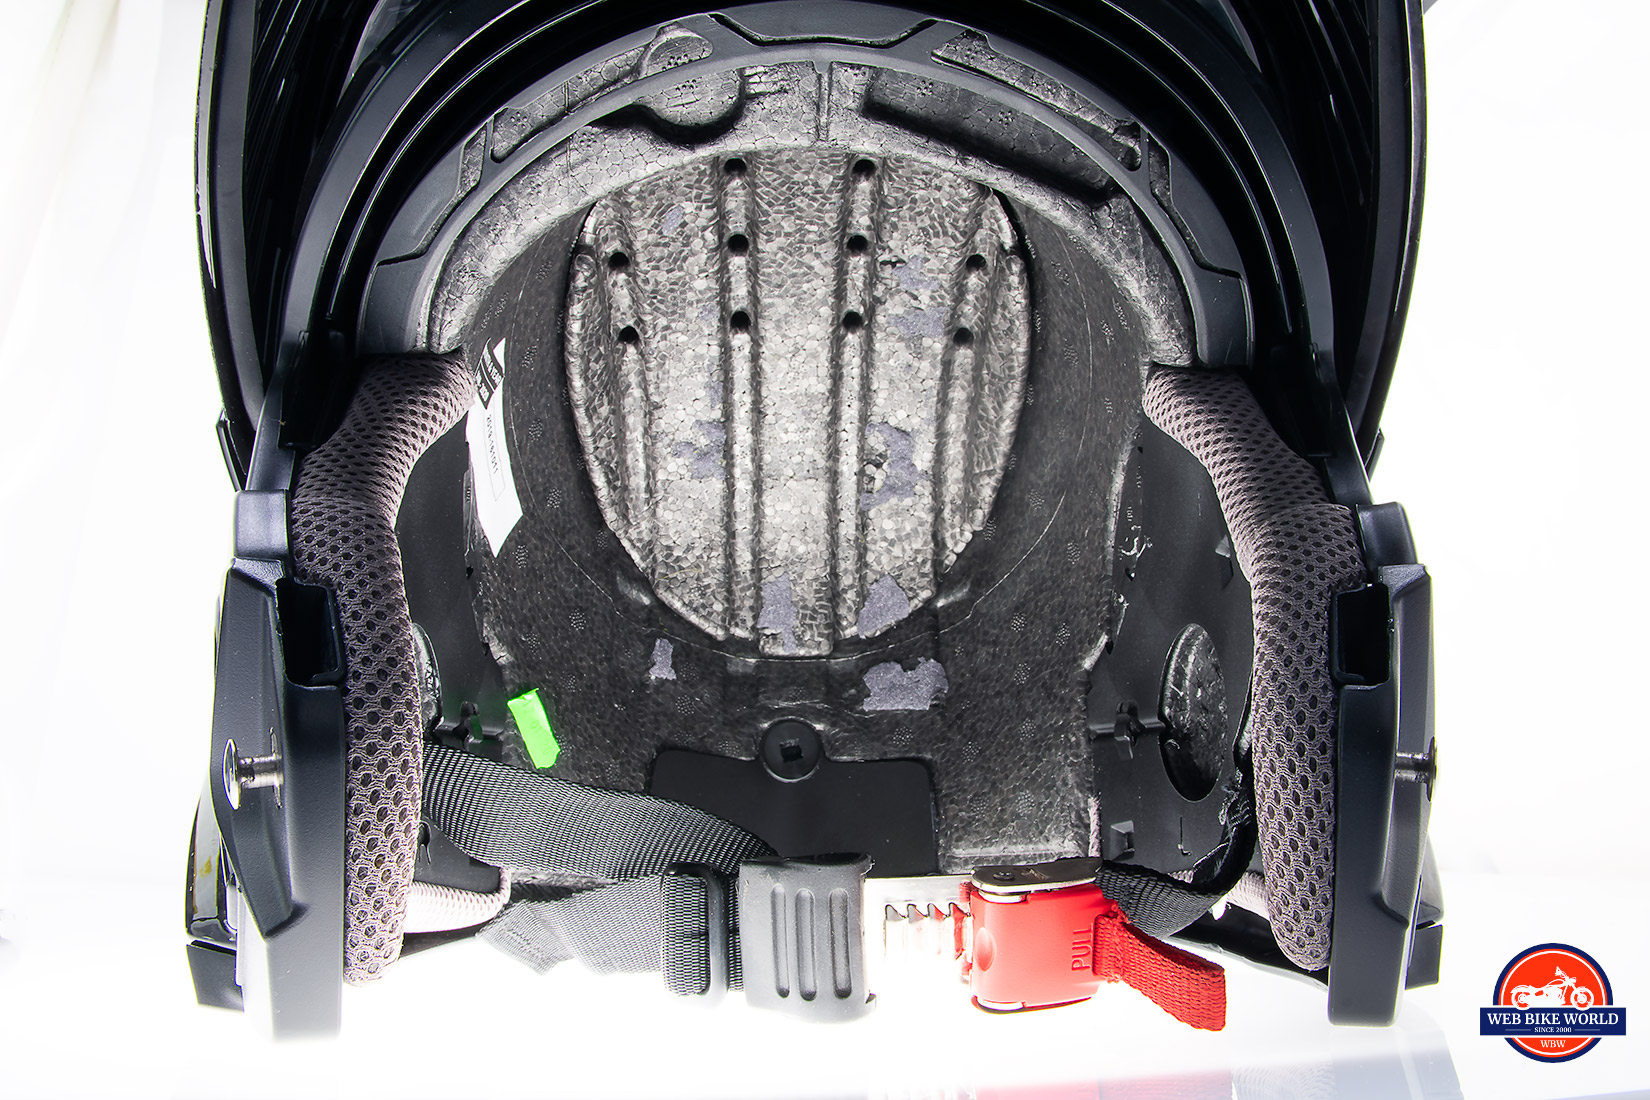 The inside air channeling of the Touratech Aventuro Traveller Carbon